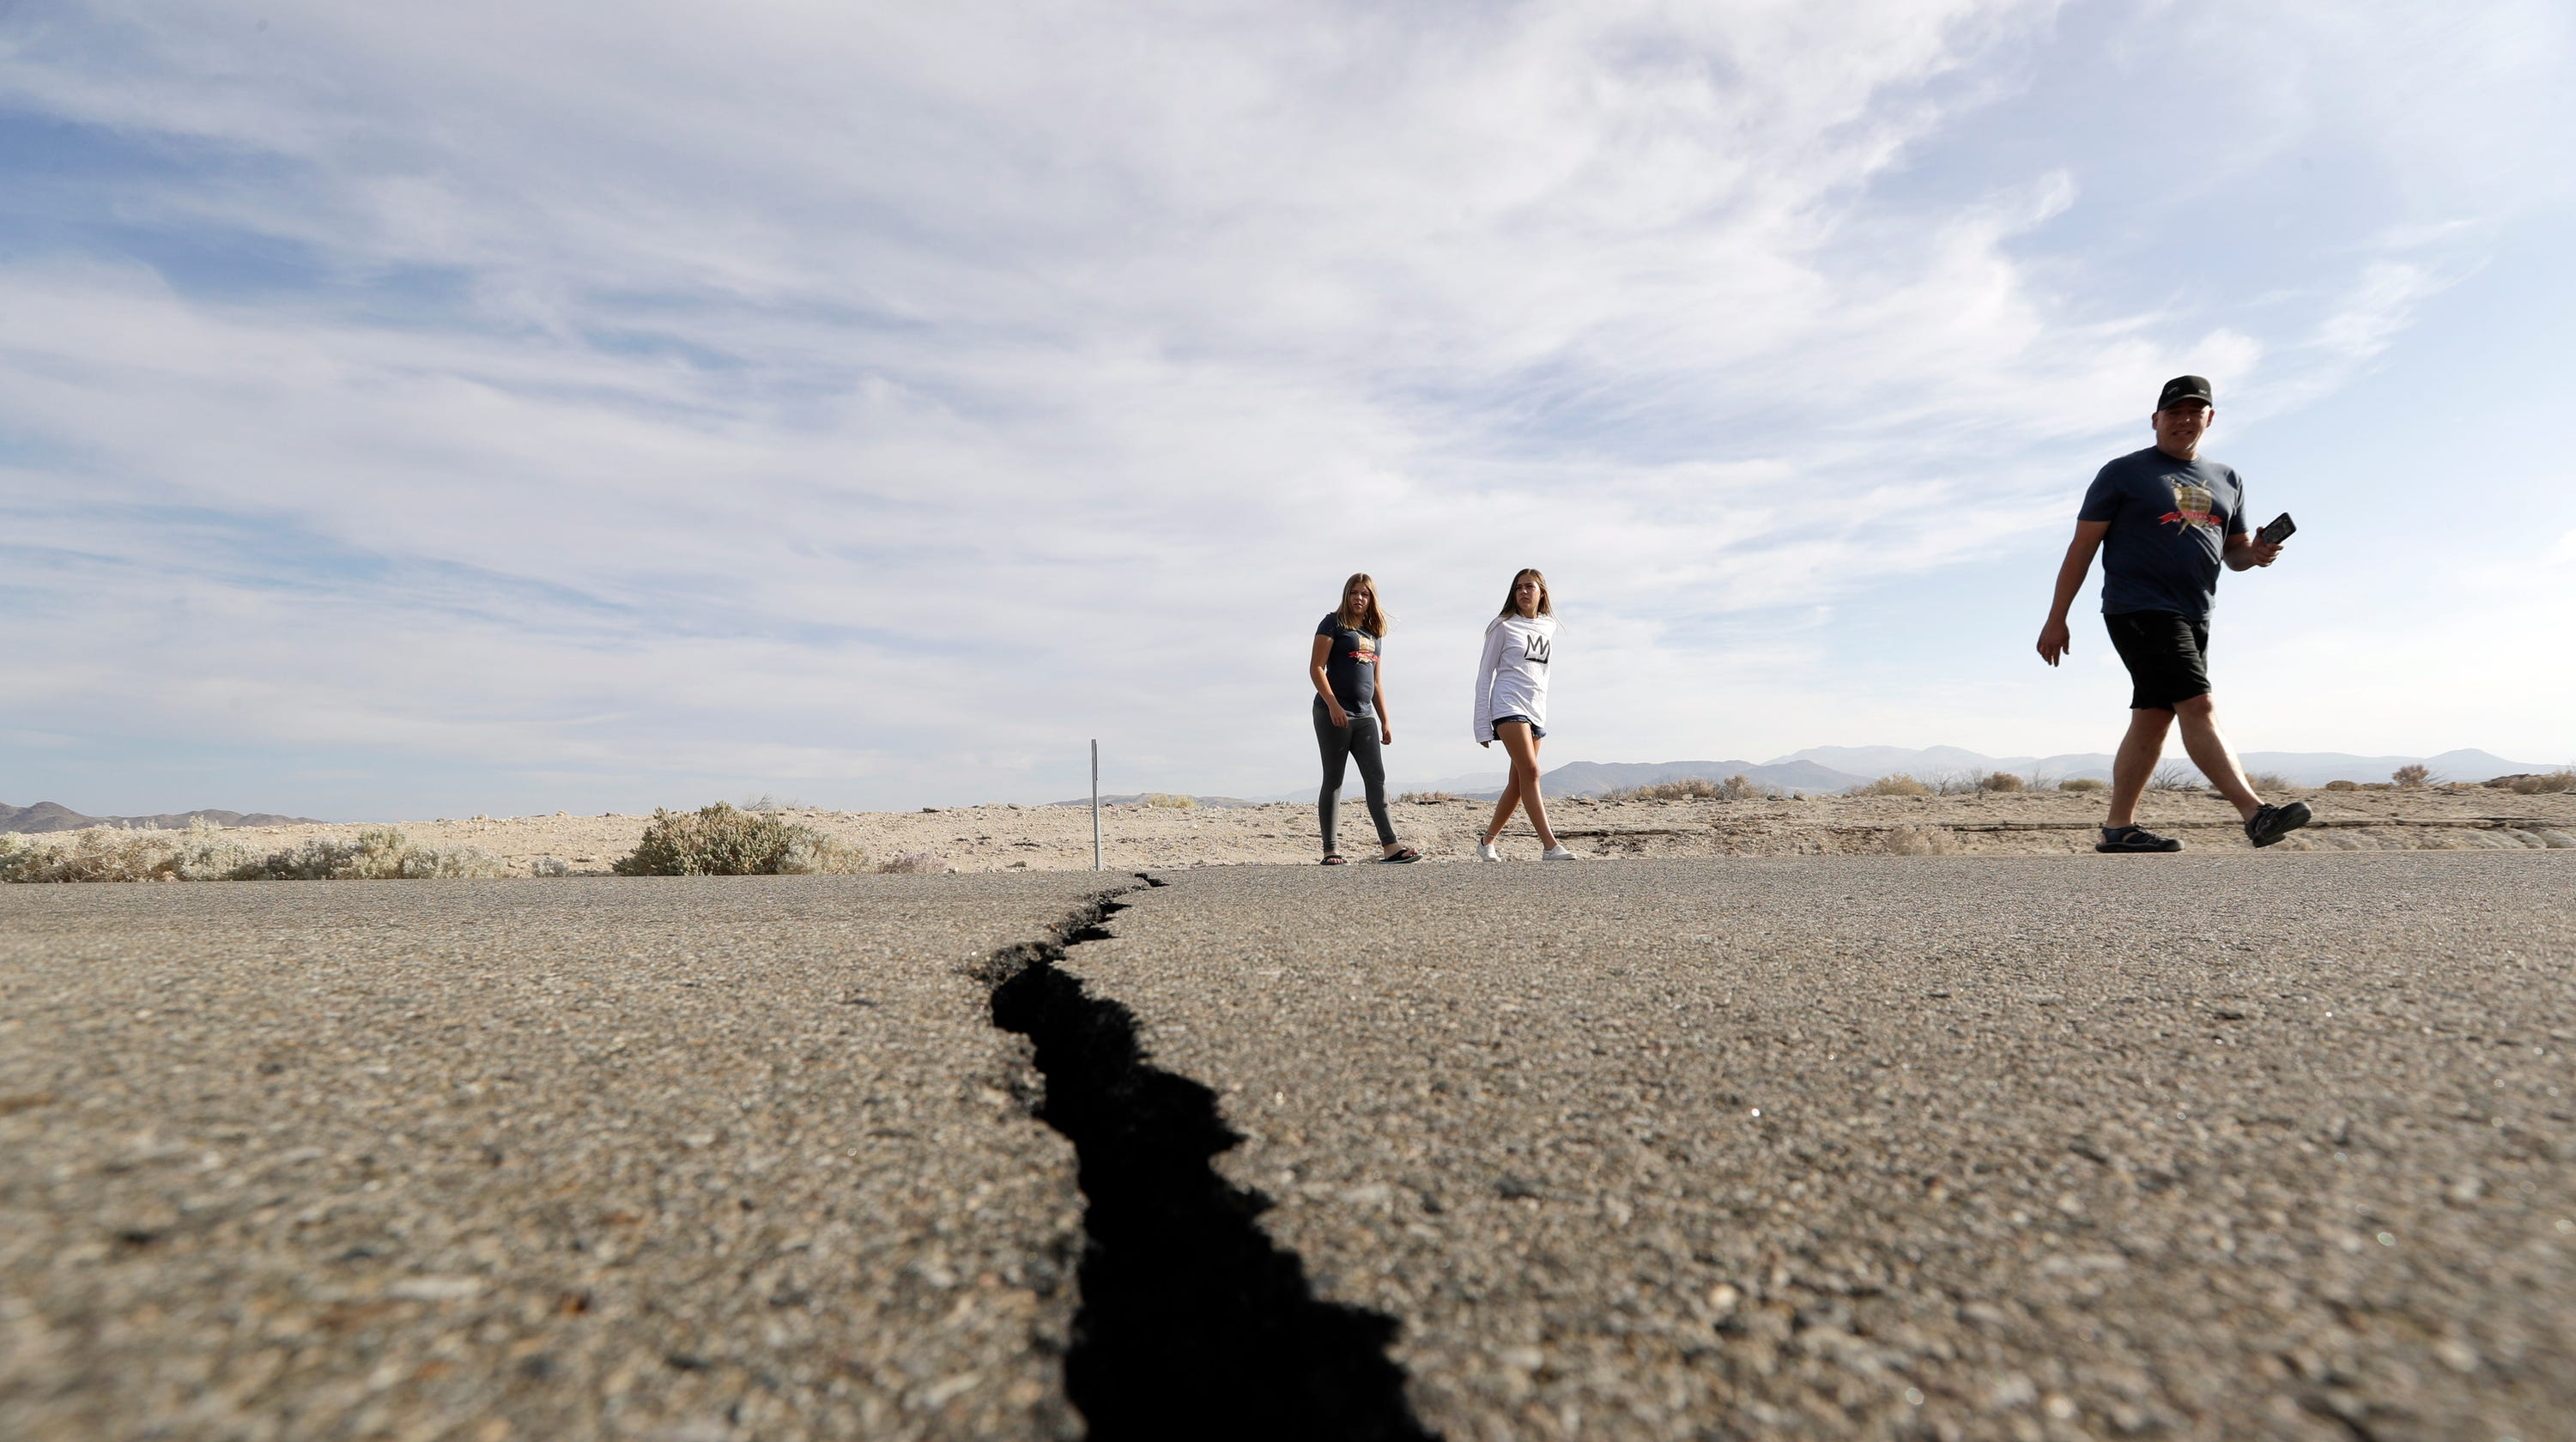 Is 'The Big One' next? California was shaking again Tuesday, with six earthquakes of 3.5 or greater